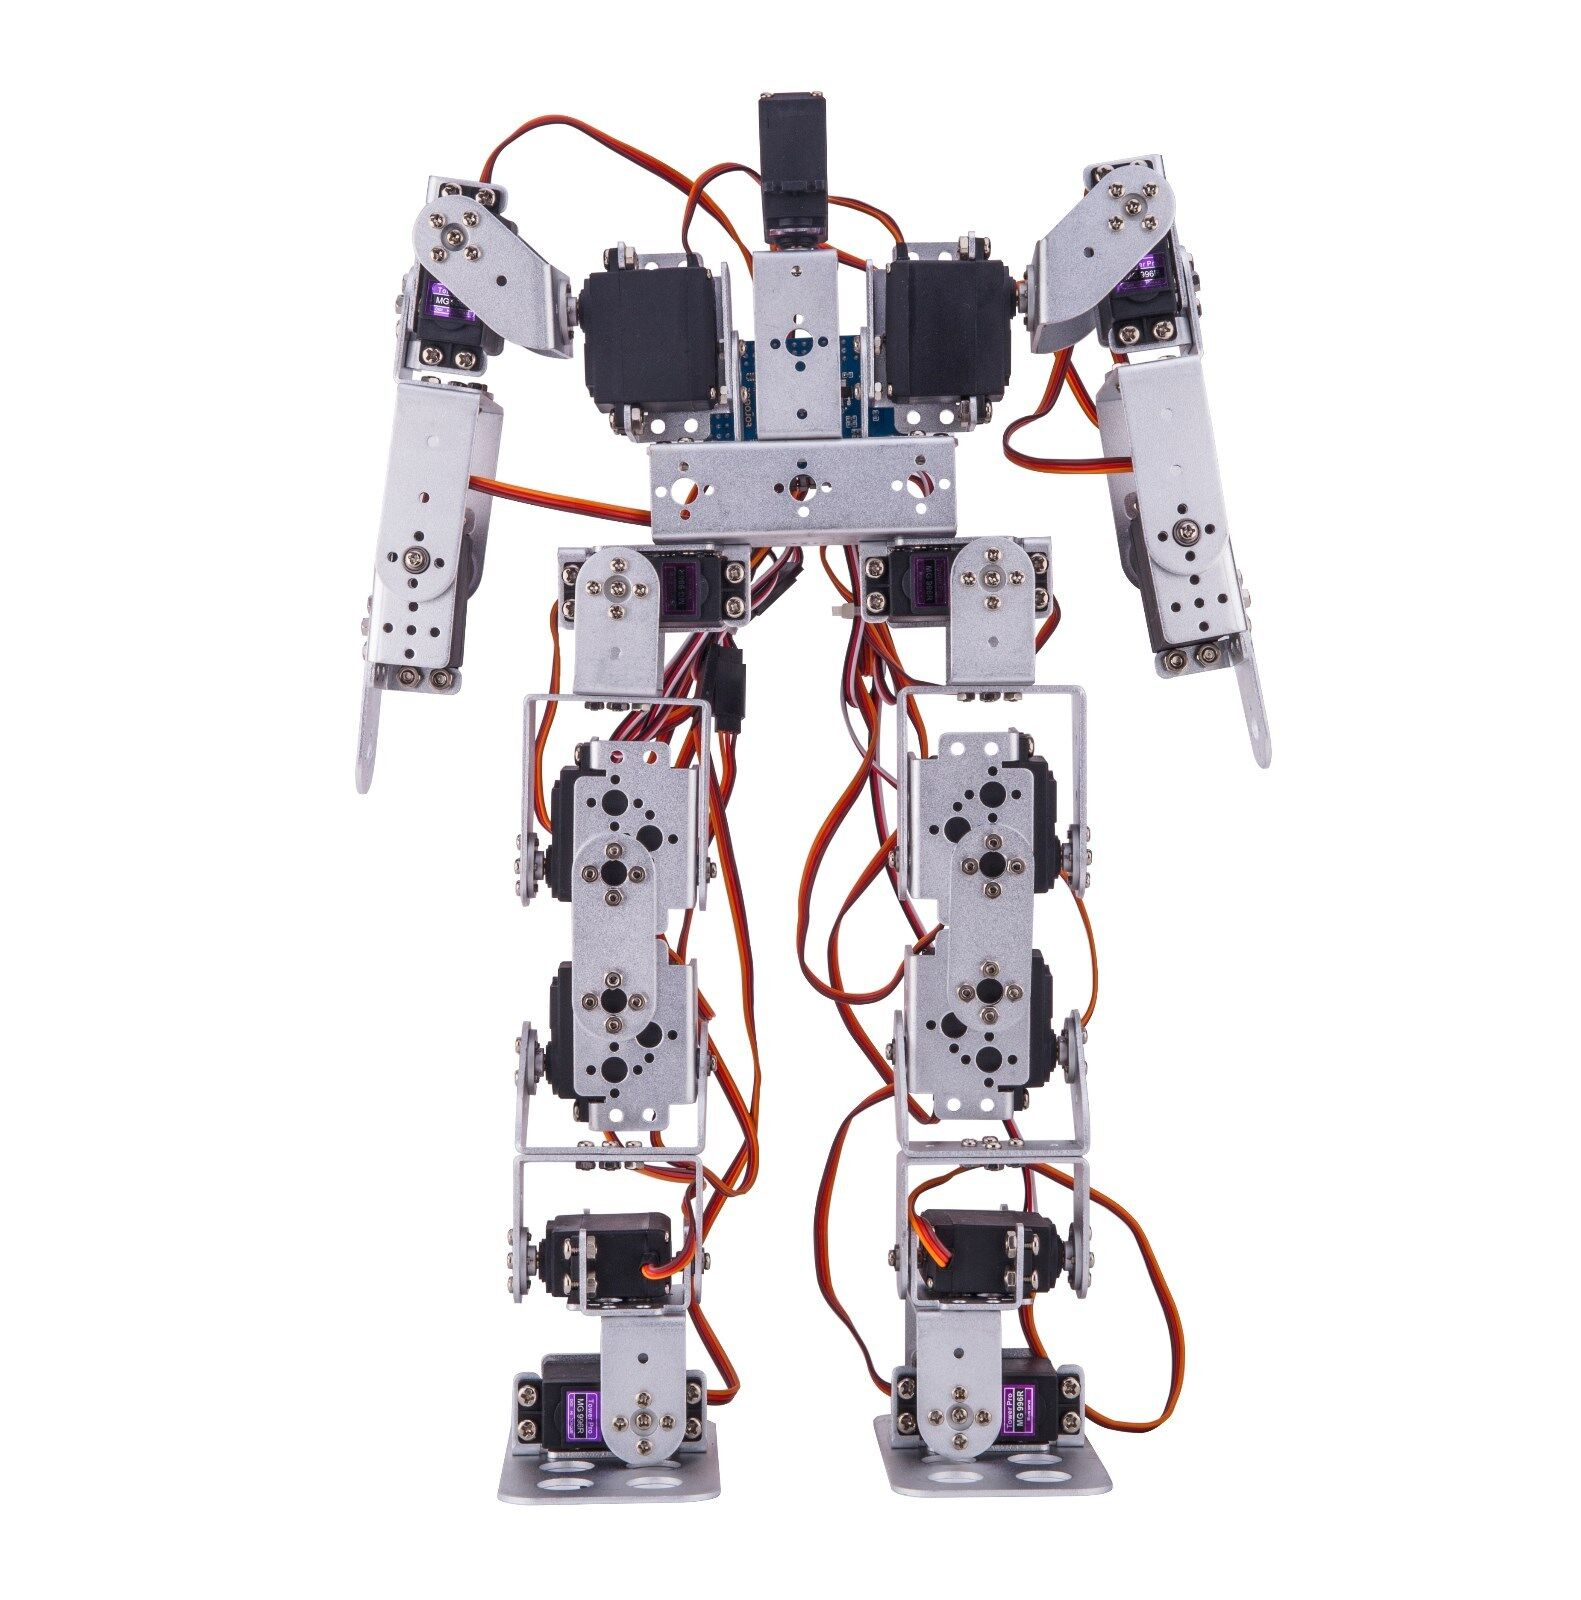 17 DOF Robot Body (Body Only, Arduino controllable,from USA)